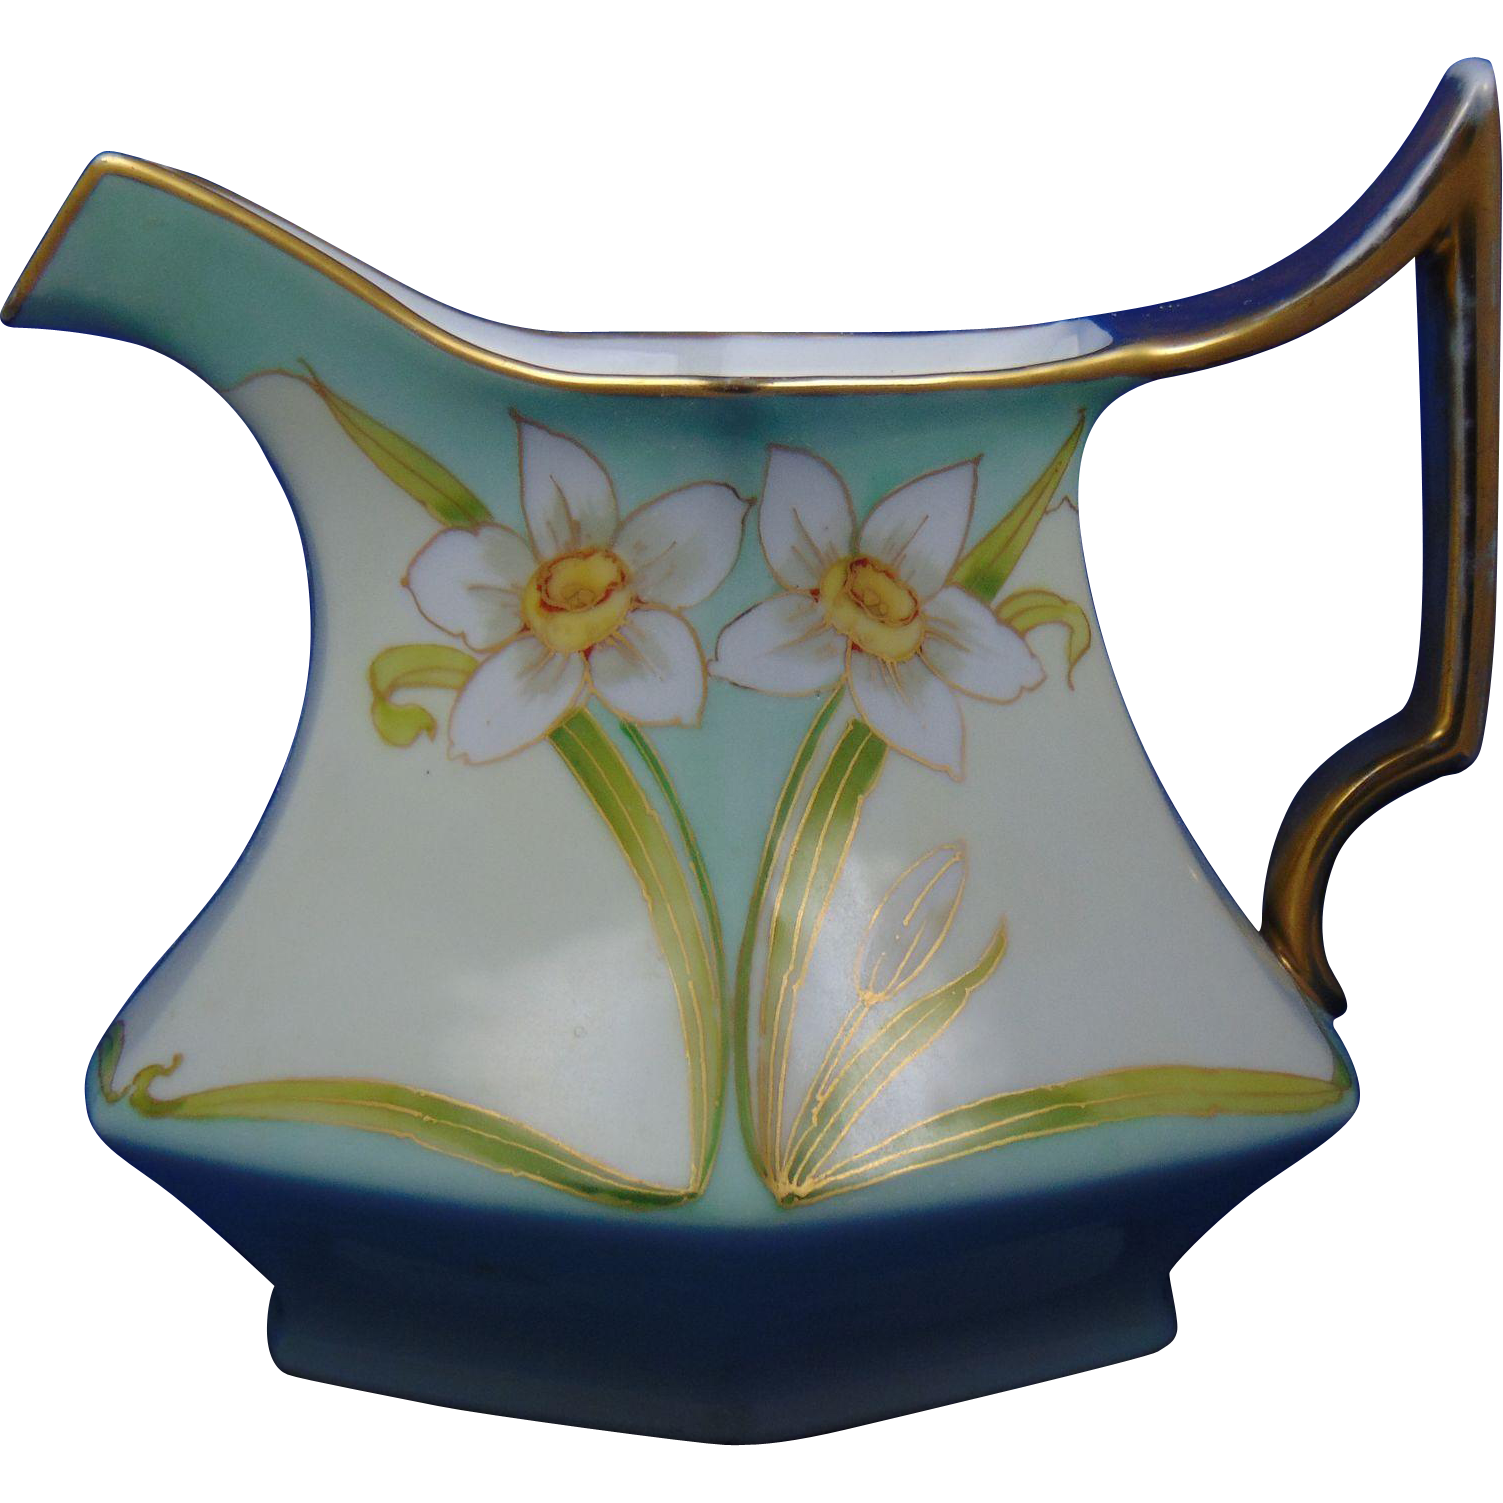 Tressemann & Vogt (T&V) Limoges France Studio Chicago Jonquil Design Cider Pitcher (c.1906-1916)